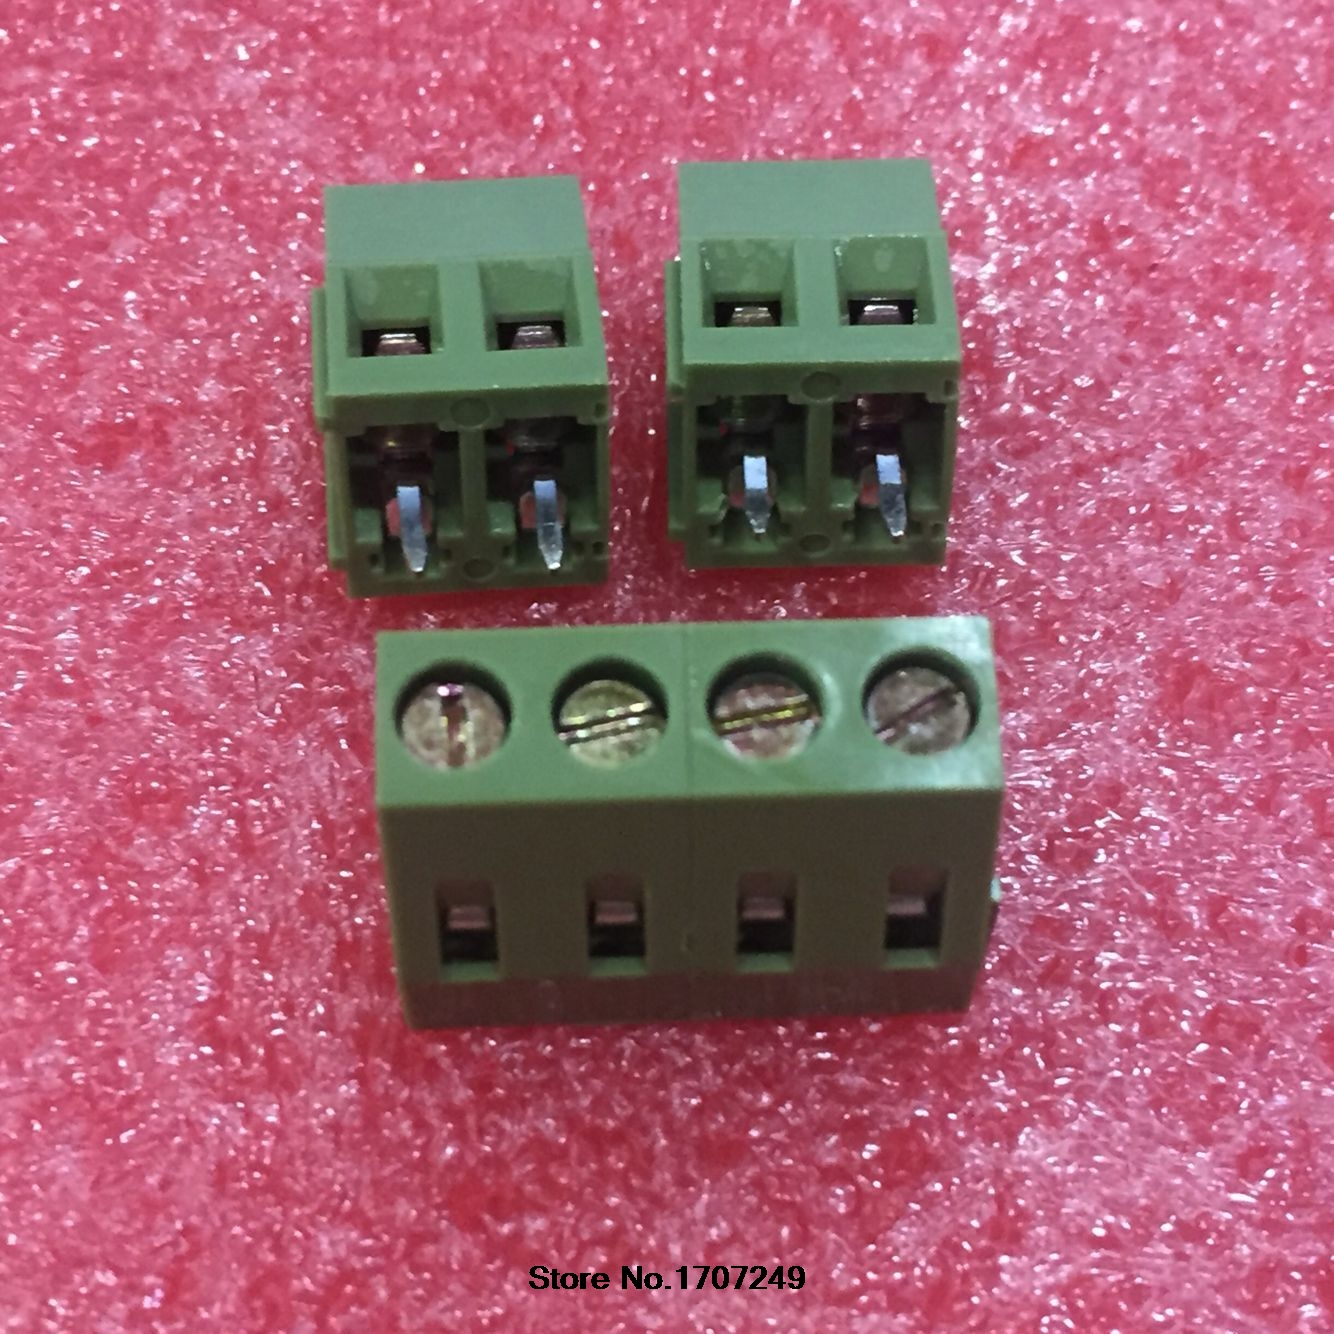 Home Improvement Selfless 500pcs Kf128-5.08-2p Kf128-2p Kf128 2pin 5.08mm High Quality Environmental Copper Feet Pcb Screw Terminal Block Connector Rohs Electrical Equipments & Supplies